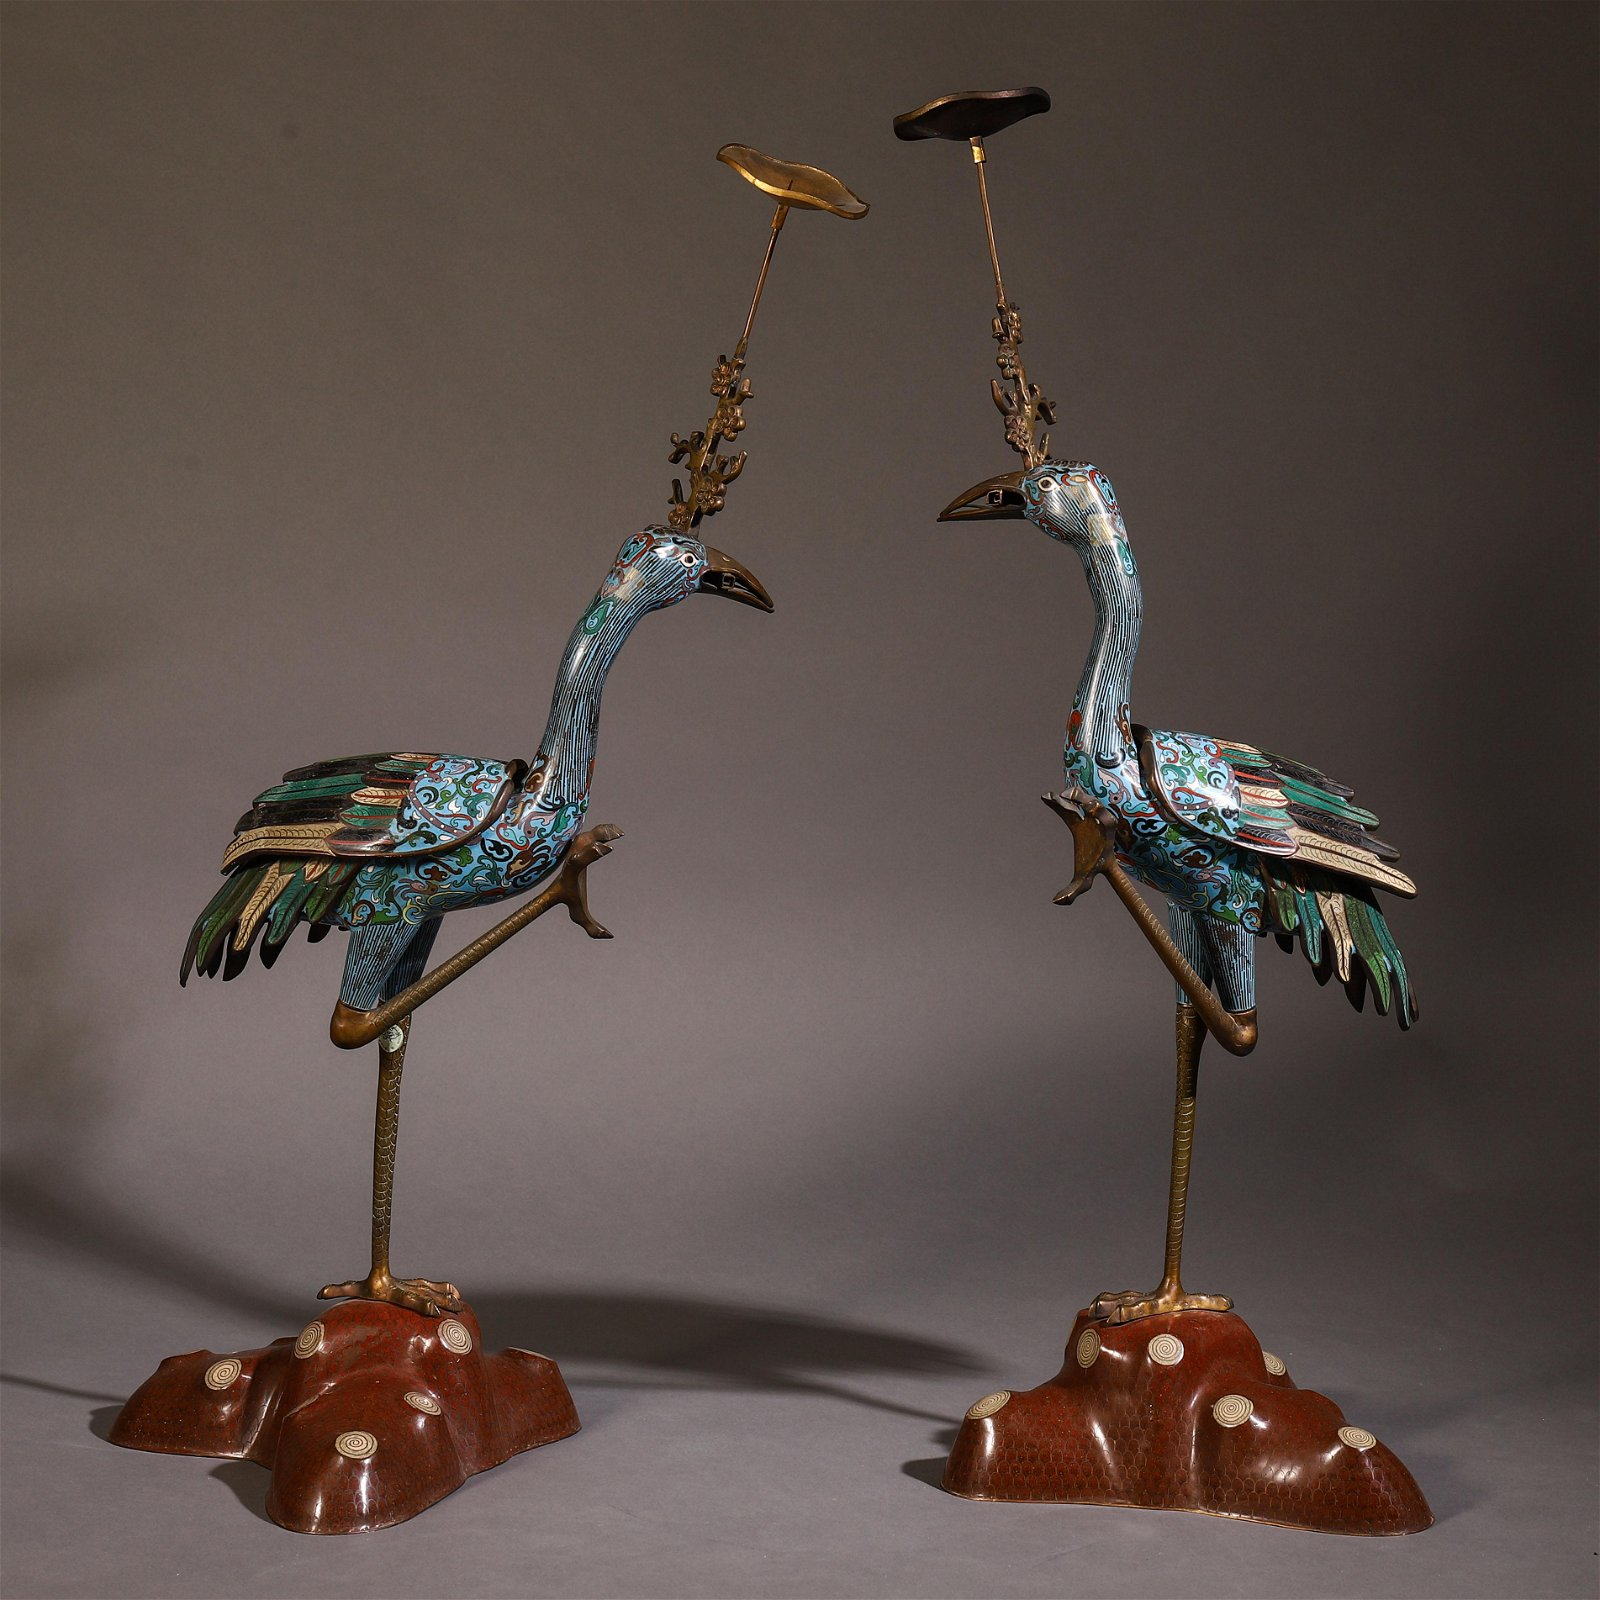 A Chinese Cloisonne Enamelled Crane Candle Stand